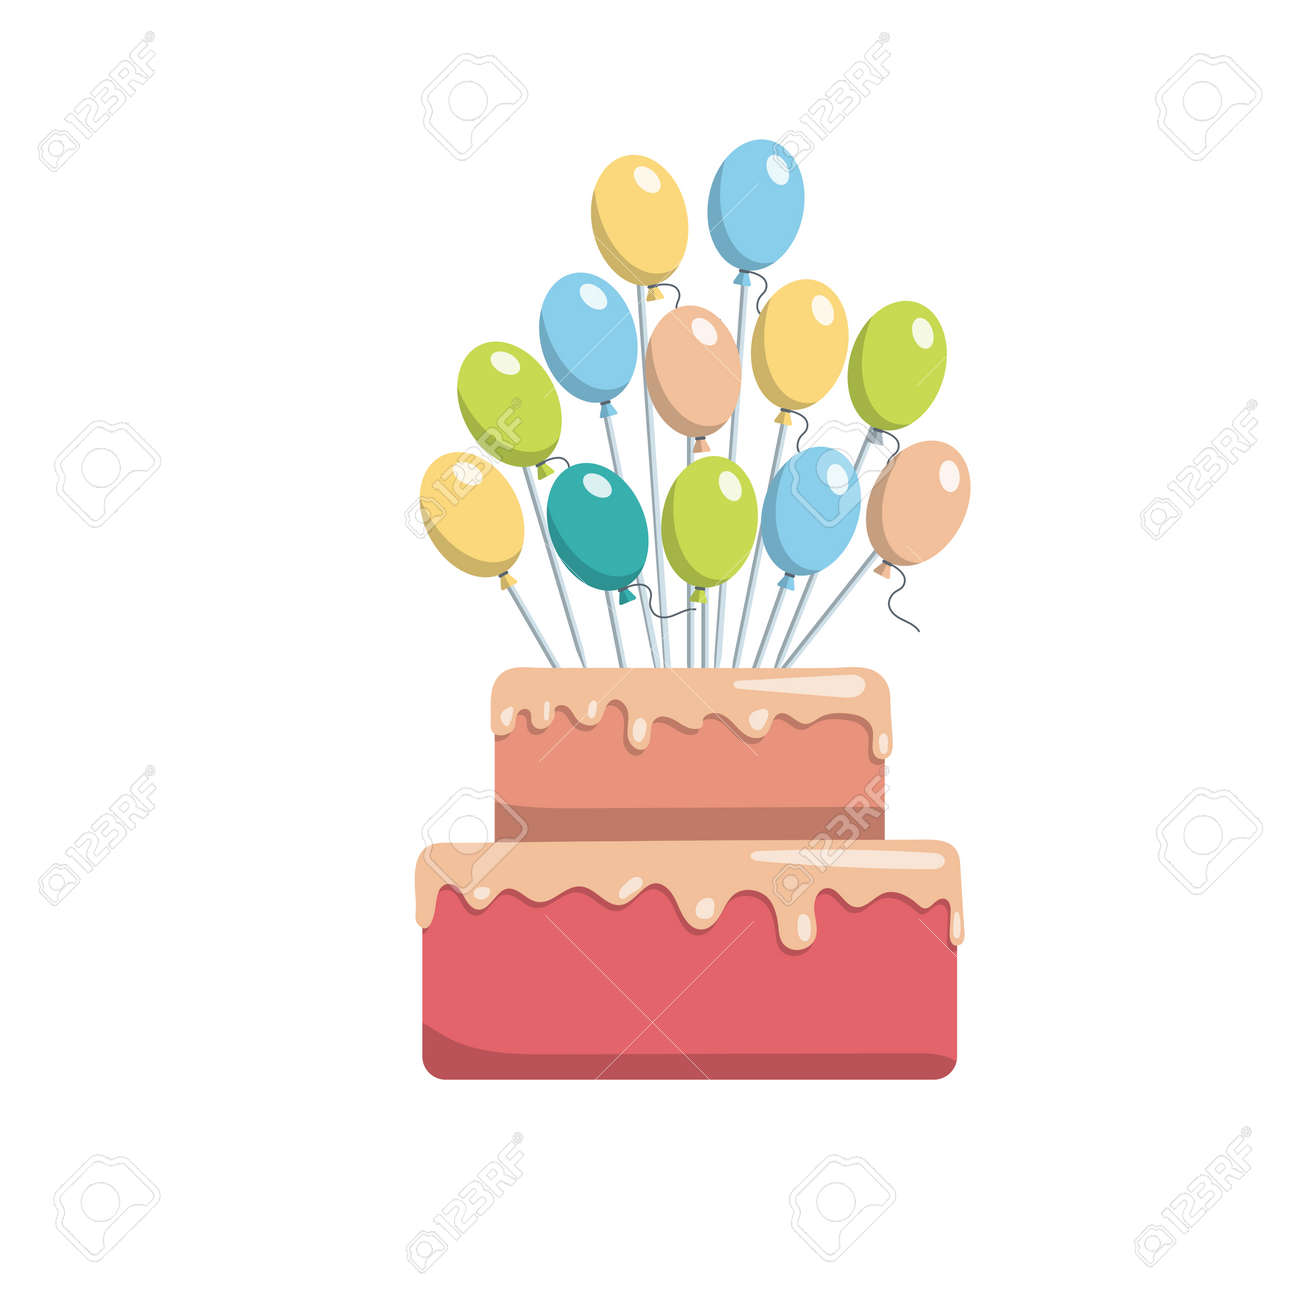 Great Birthday Cake Topper For A Vector Image Of